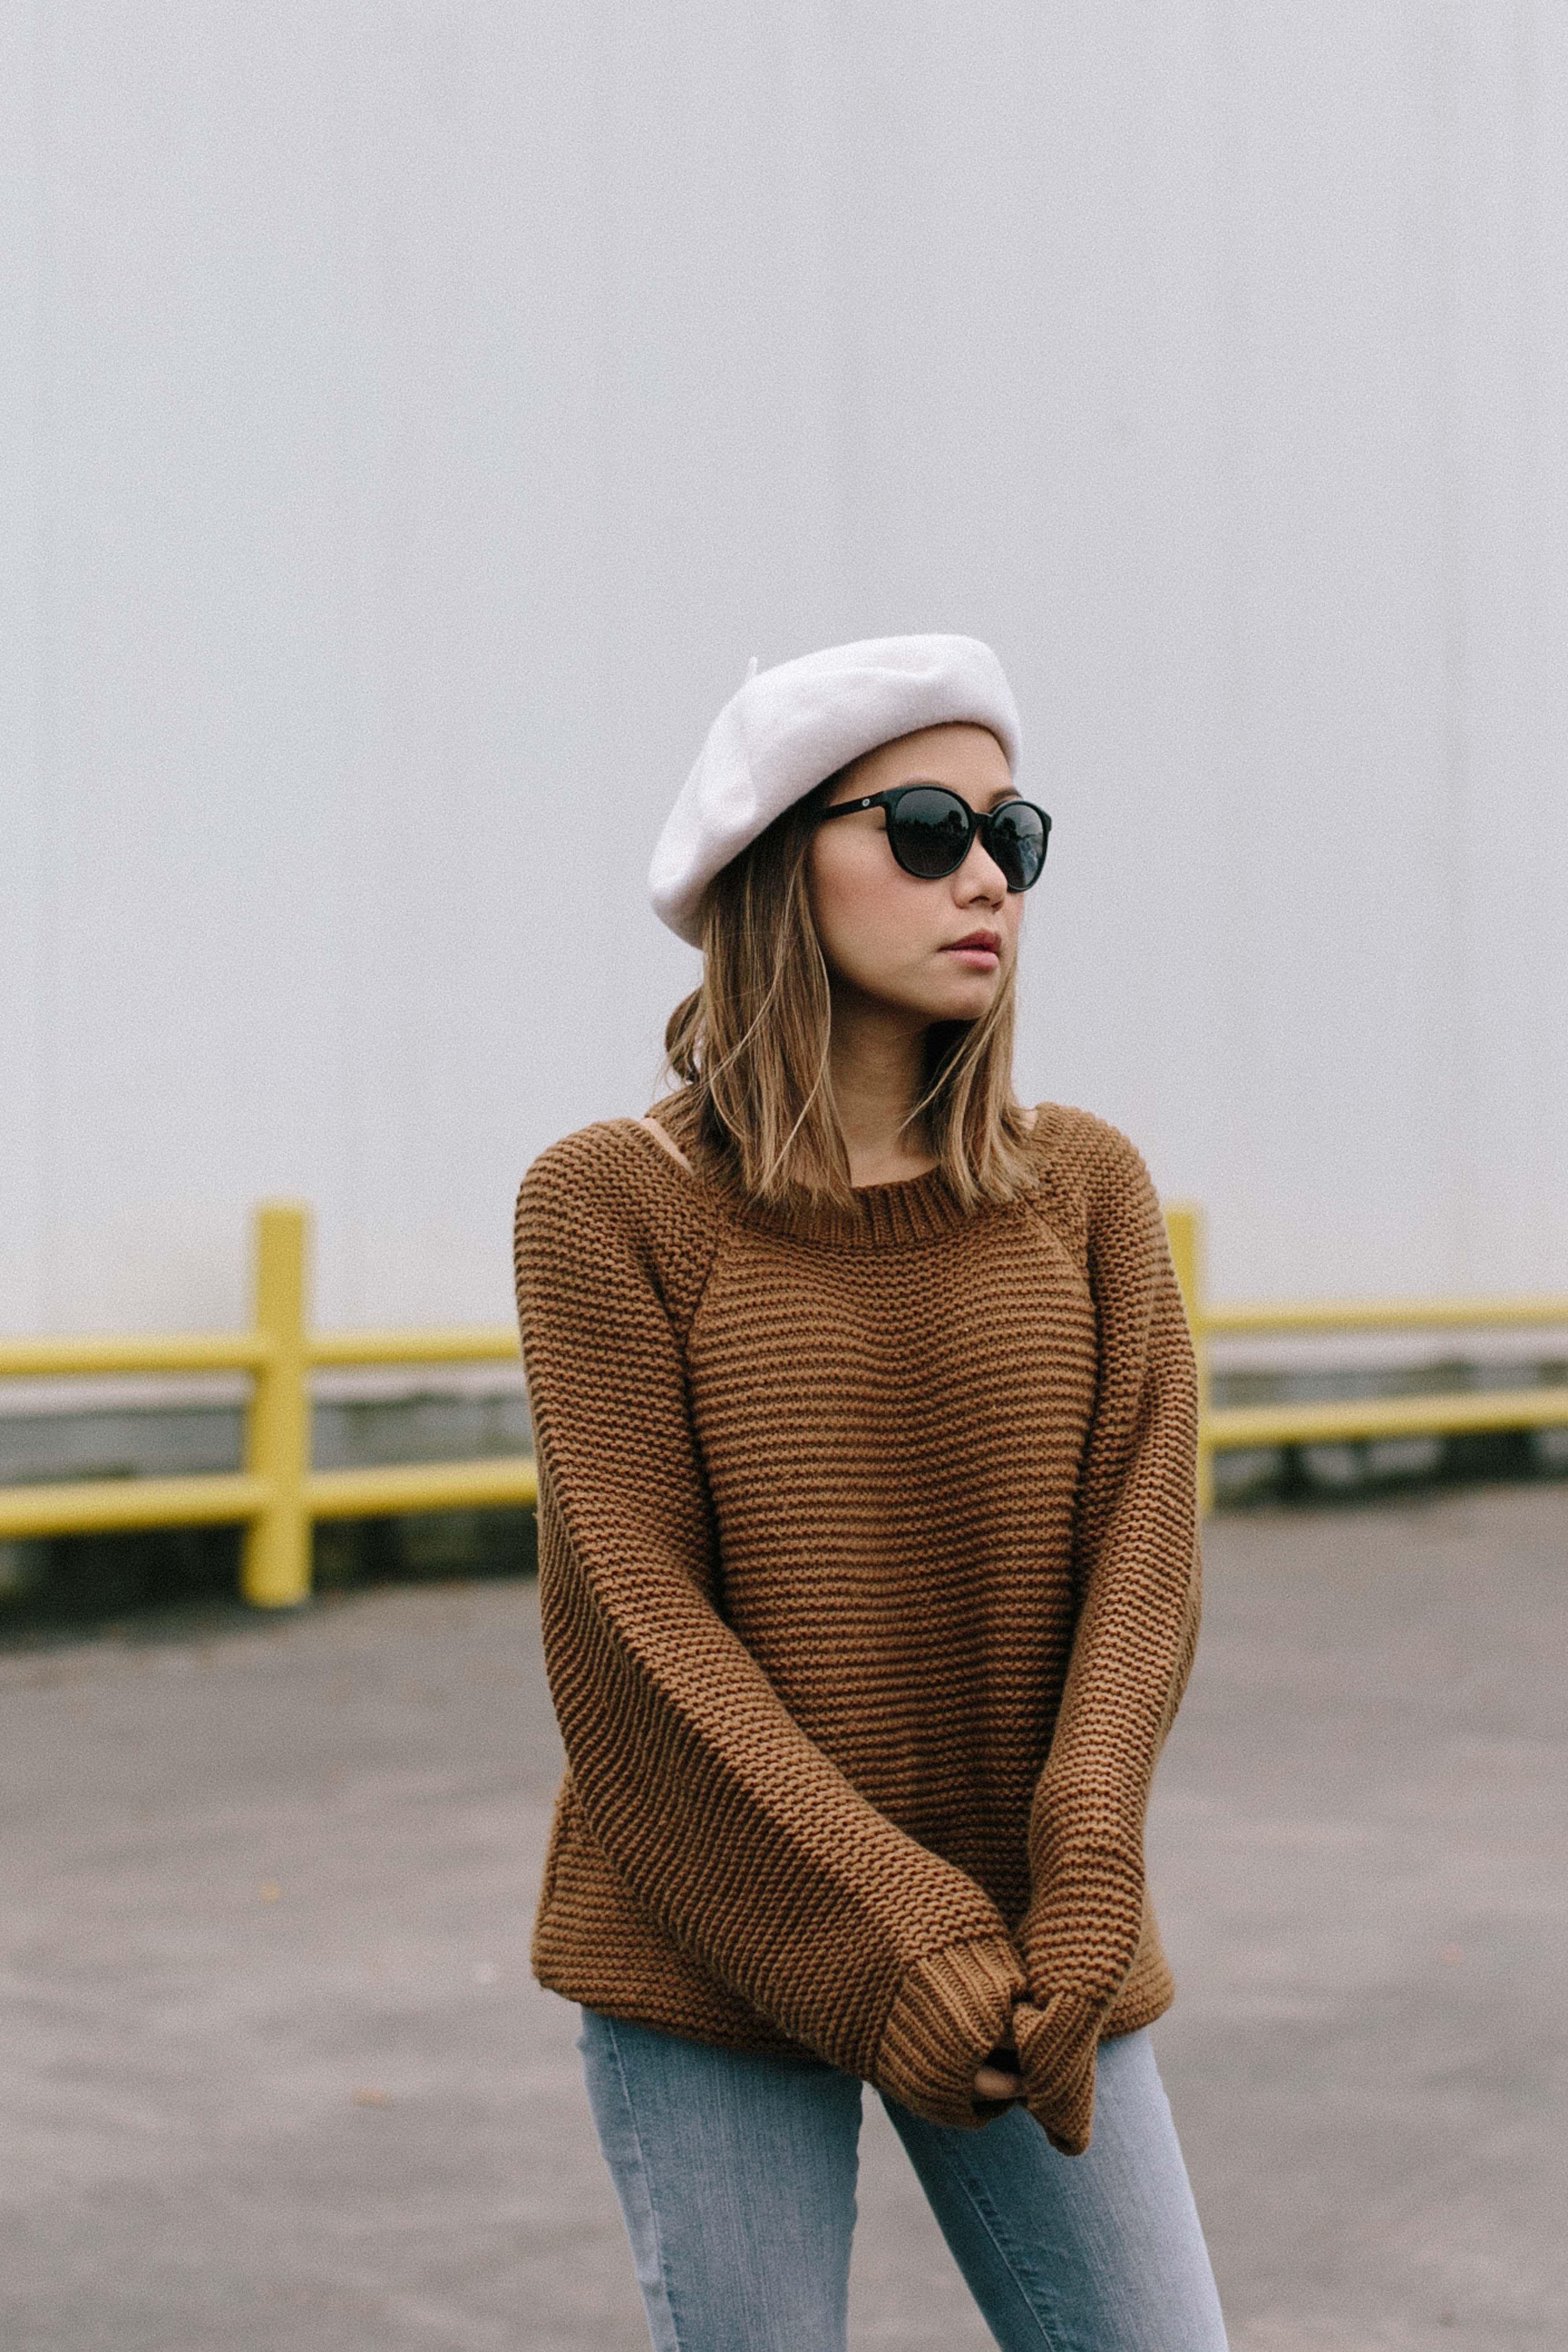 f05a2ec0099b chestnut sweater, brown sweater, cognac sweater, beret outfit ideas, fall  ootd, french girl fashion, french girl style, petite blogger, OC blogger,  ...